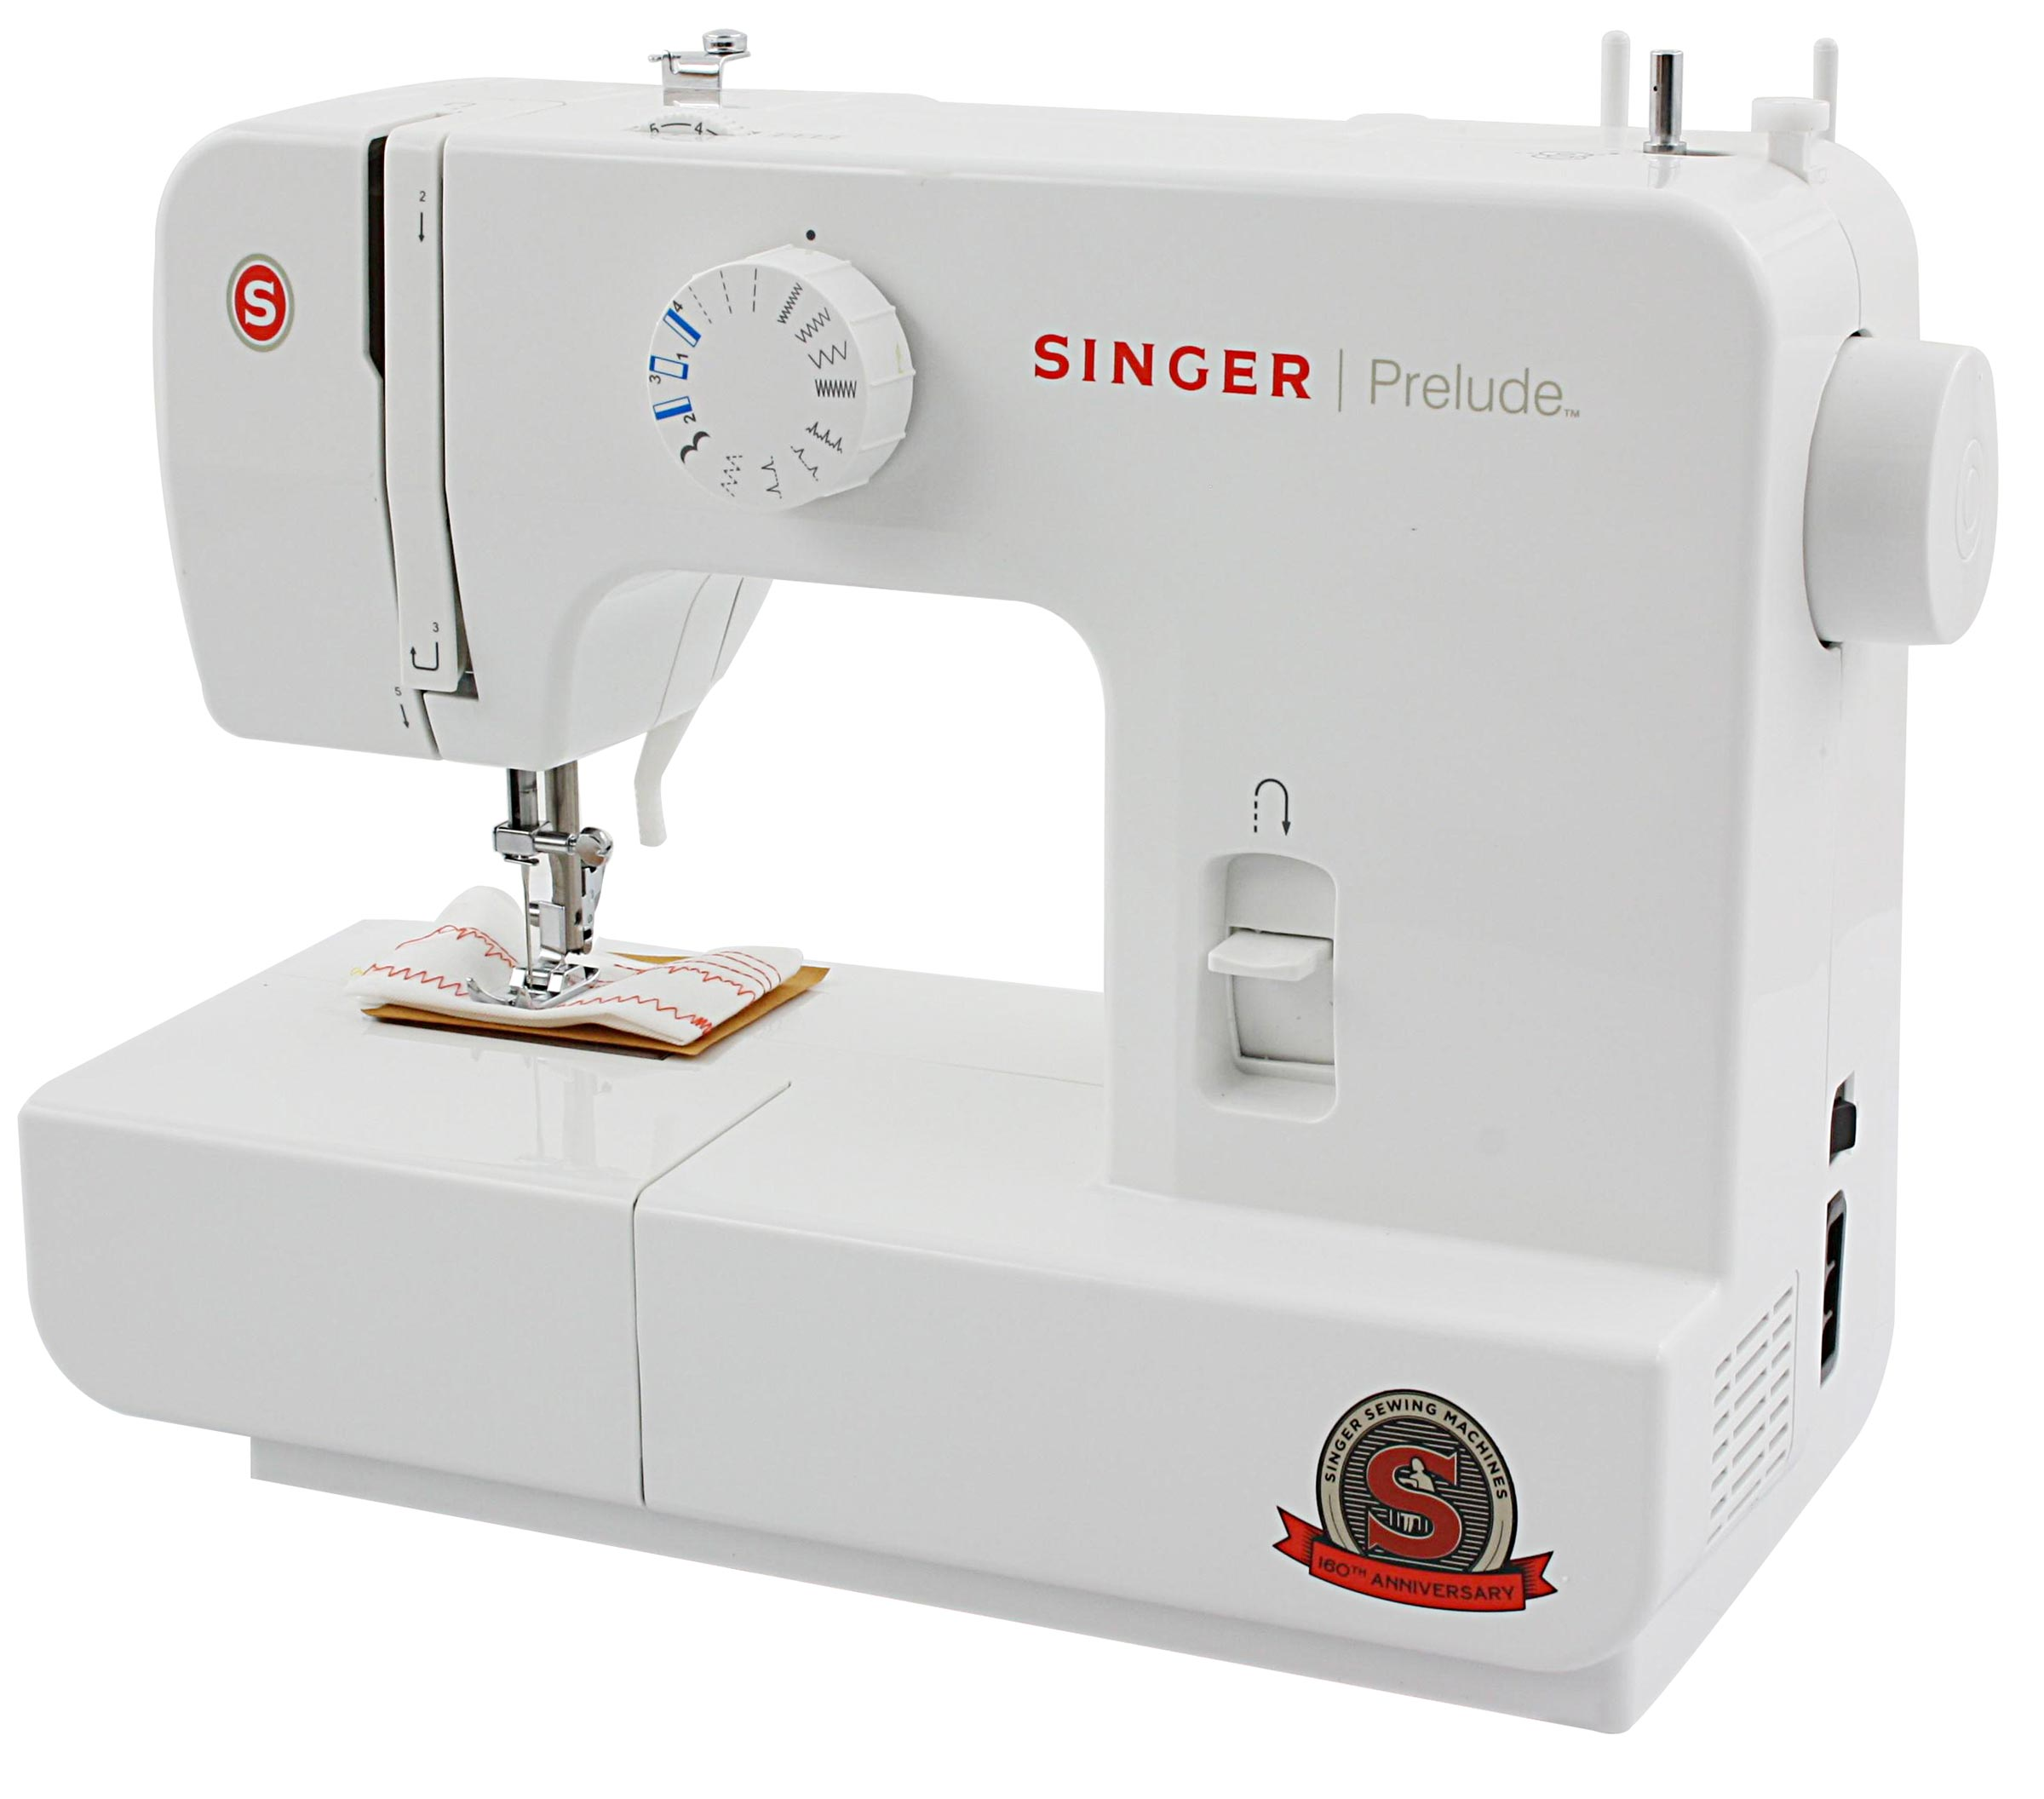 Singer c prelude cat gorie machine coudre - Enfilage machine a coudre singer ...